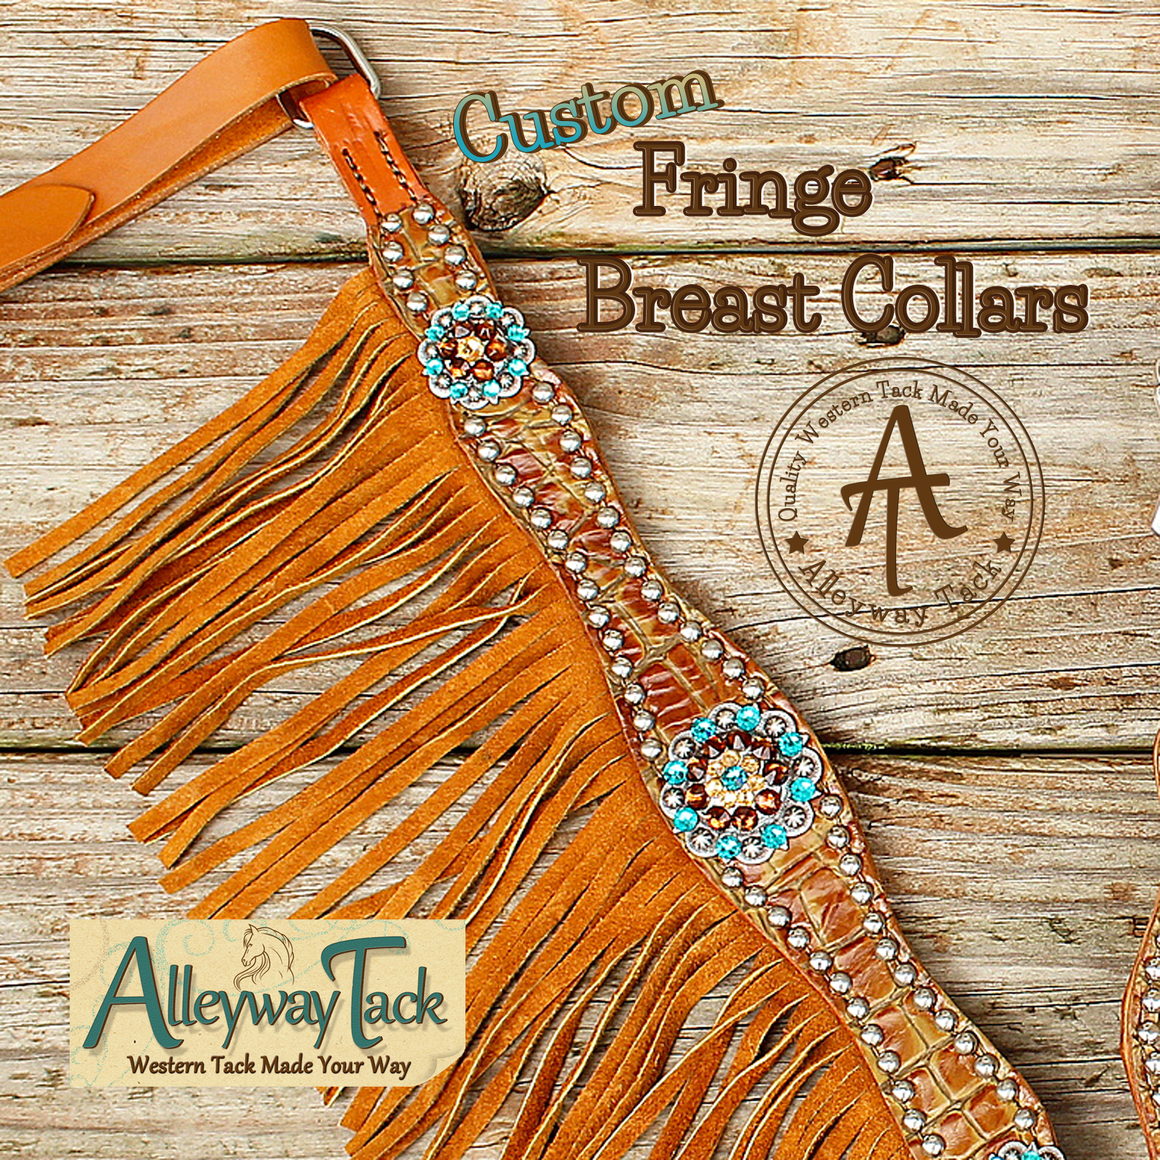 Custom Fringe Breast Collar